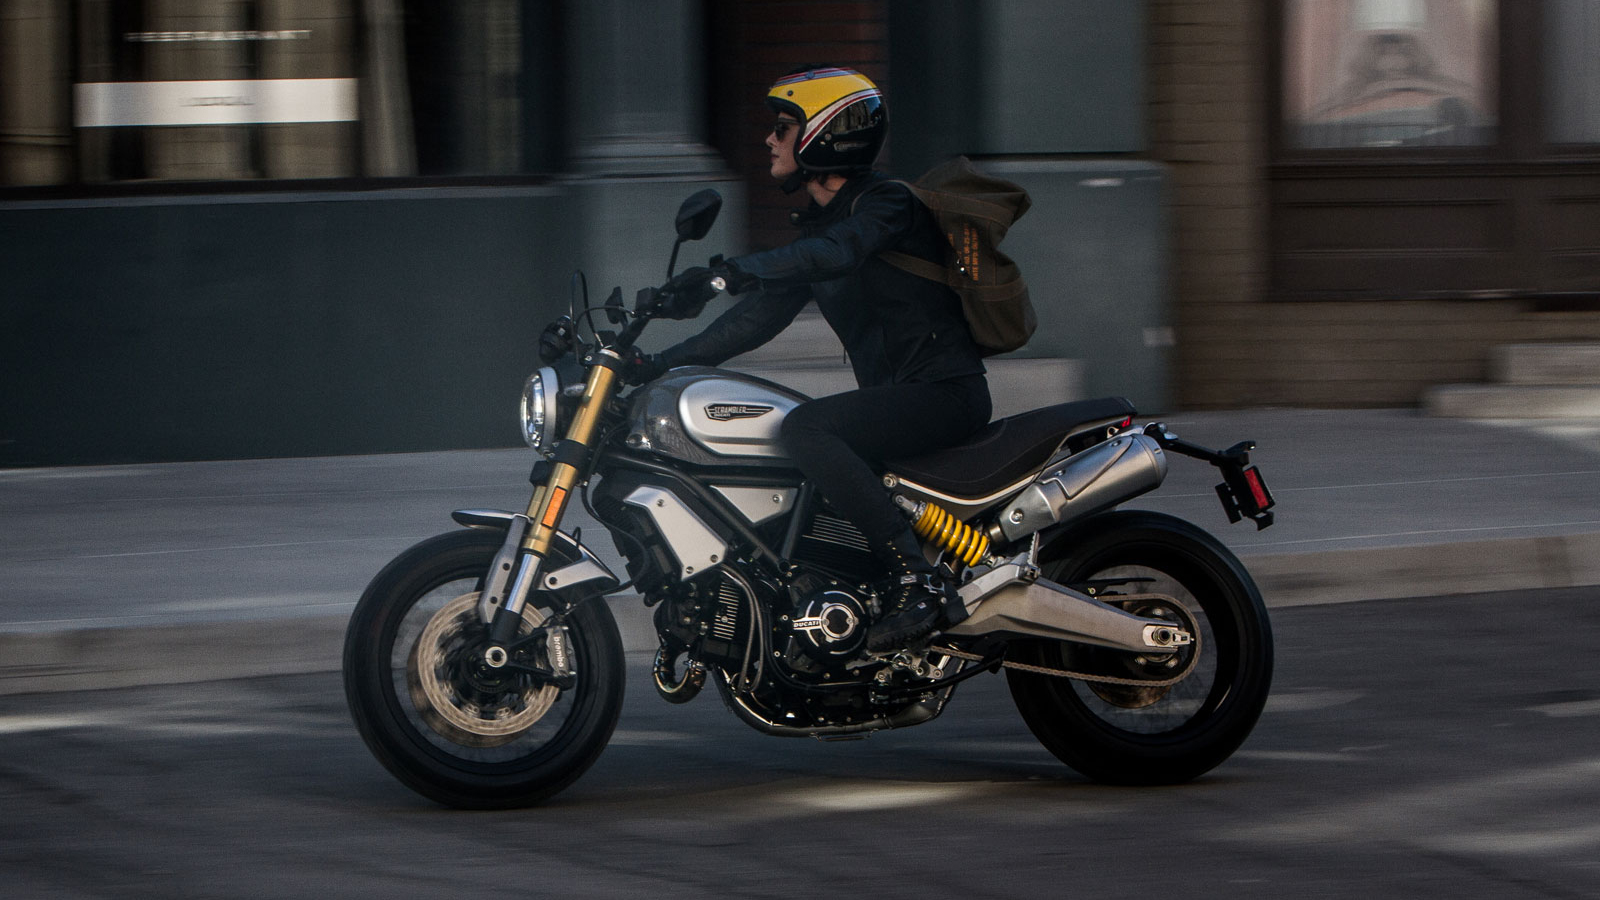 2018 ducati scrambler 1100 pictures, photos, wallpapers. | top speed